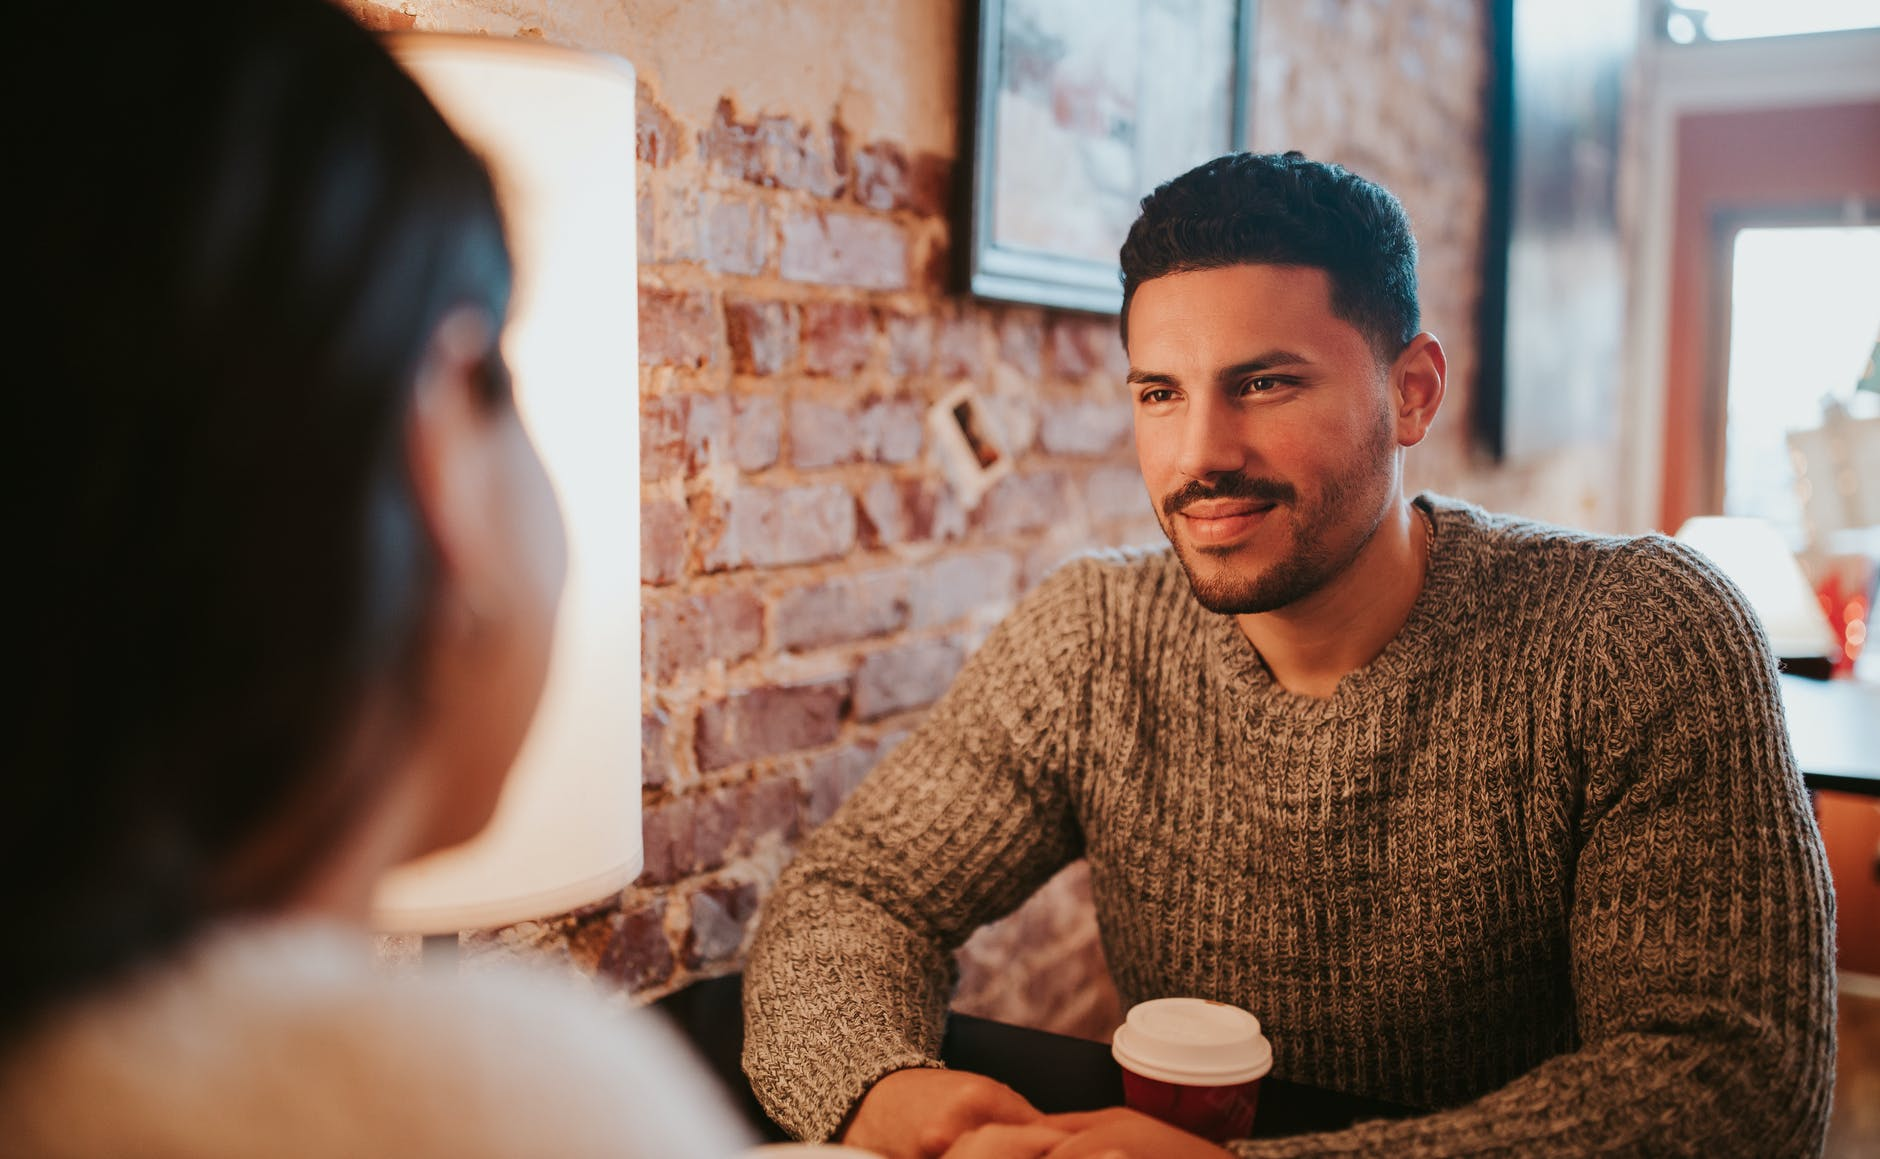 couple sitting at cafe together with coffee cup